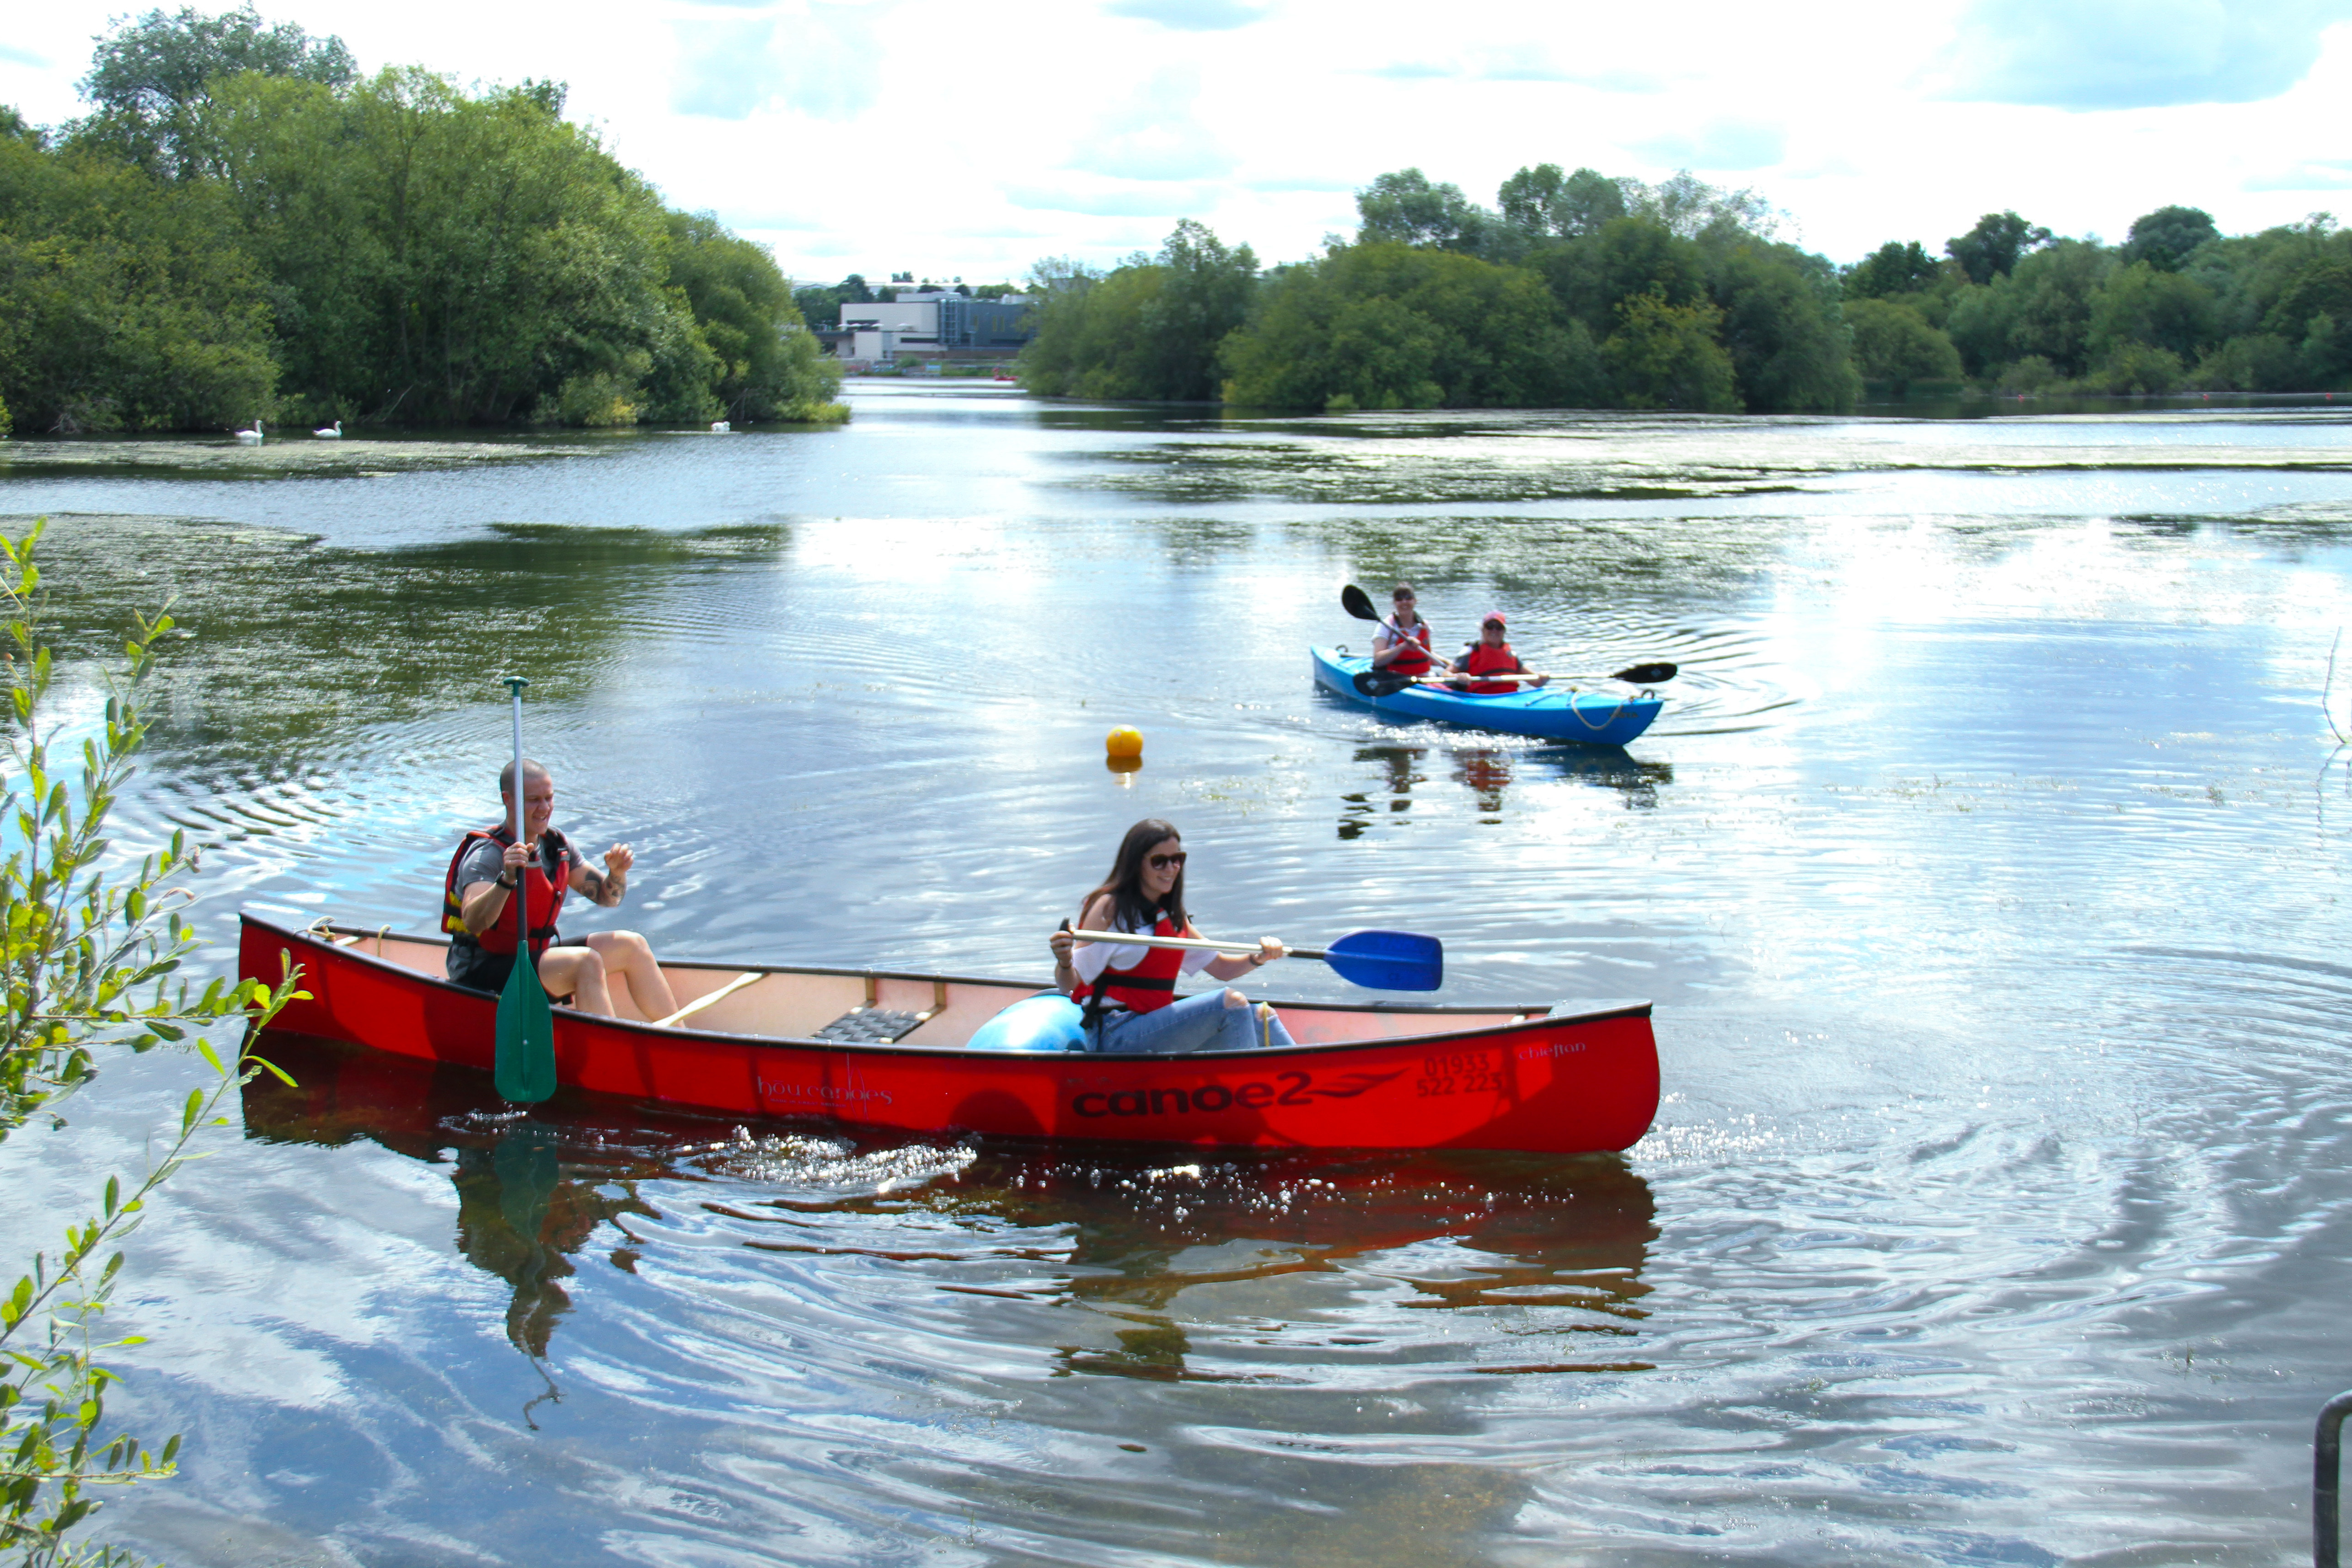 People seen rowing a canoe on the Rushden Lakes on a warm summer day. With the warm weather in the UK, people ventured outdoors amidst the novel coronavirus pandemic reprise. (Photo by David Mbiyu / SOPA Images/Sipa USA)